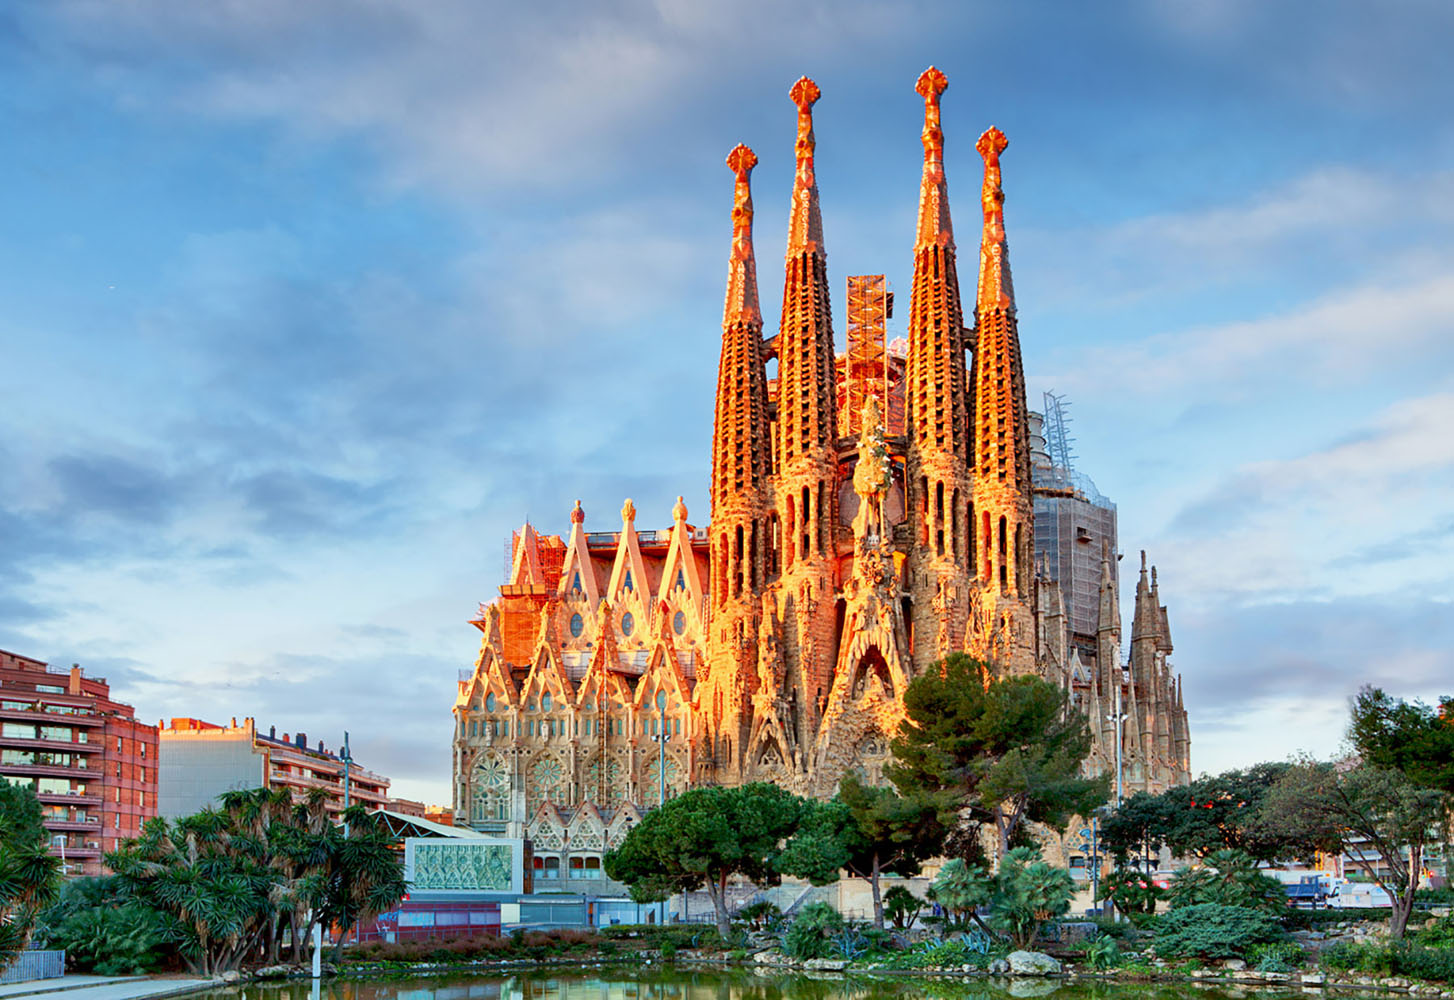 The iconic Sagrada Familia Catholic church in Barcelona, Spain